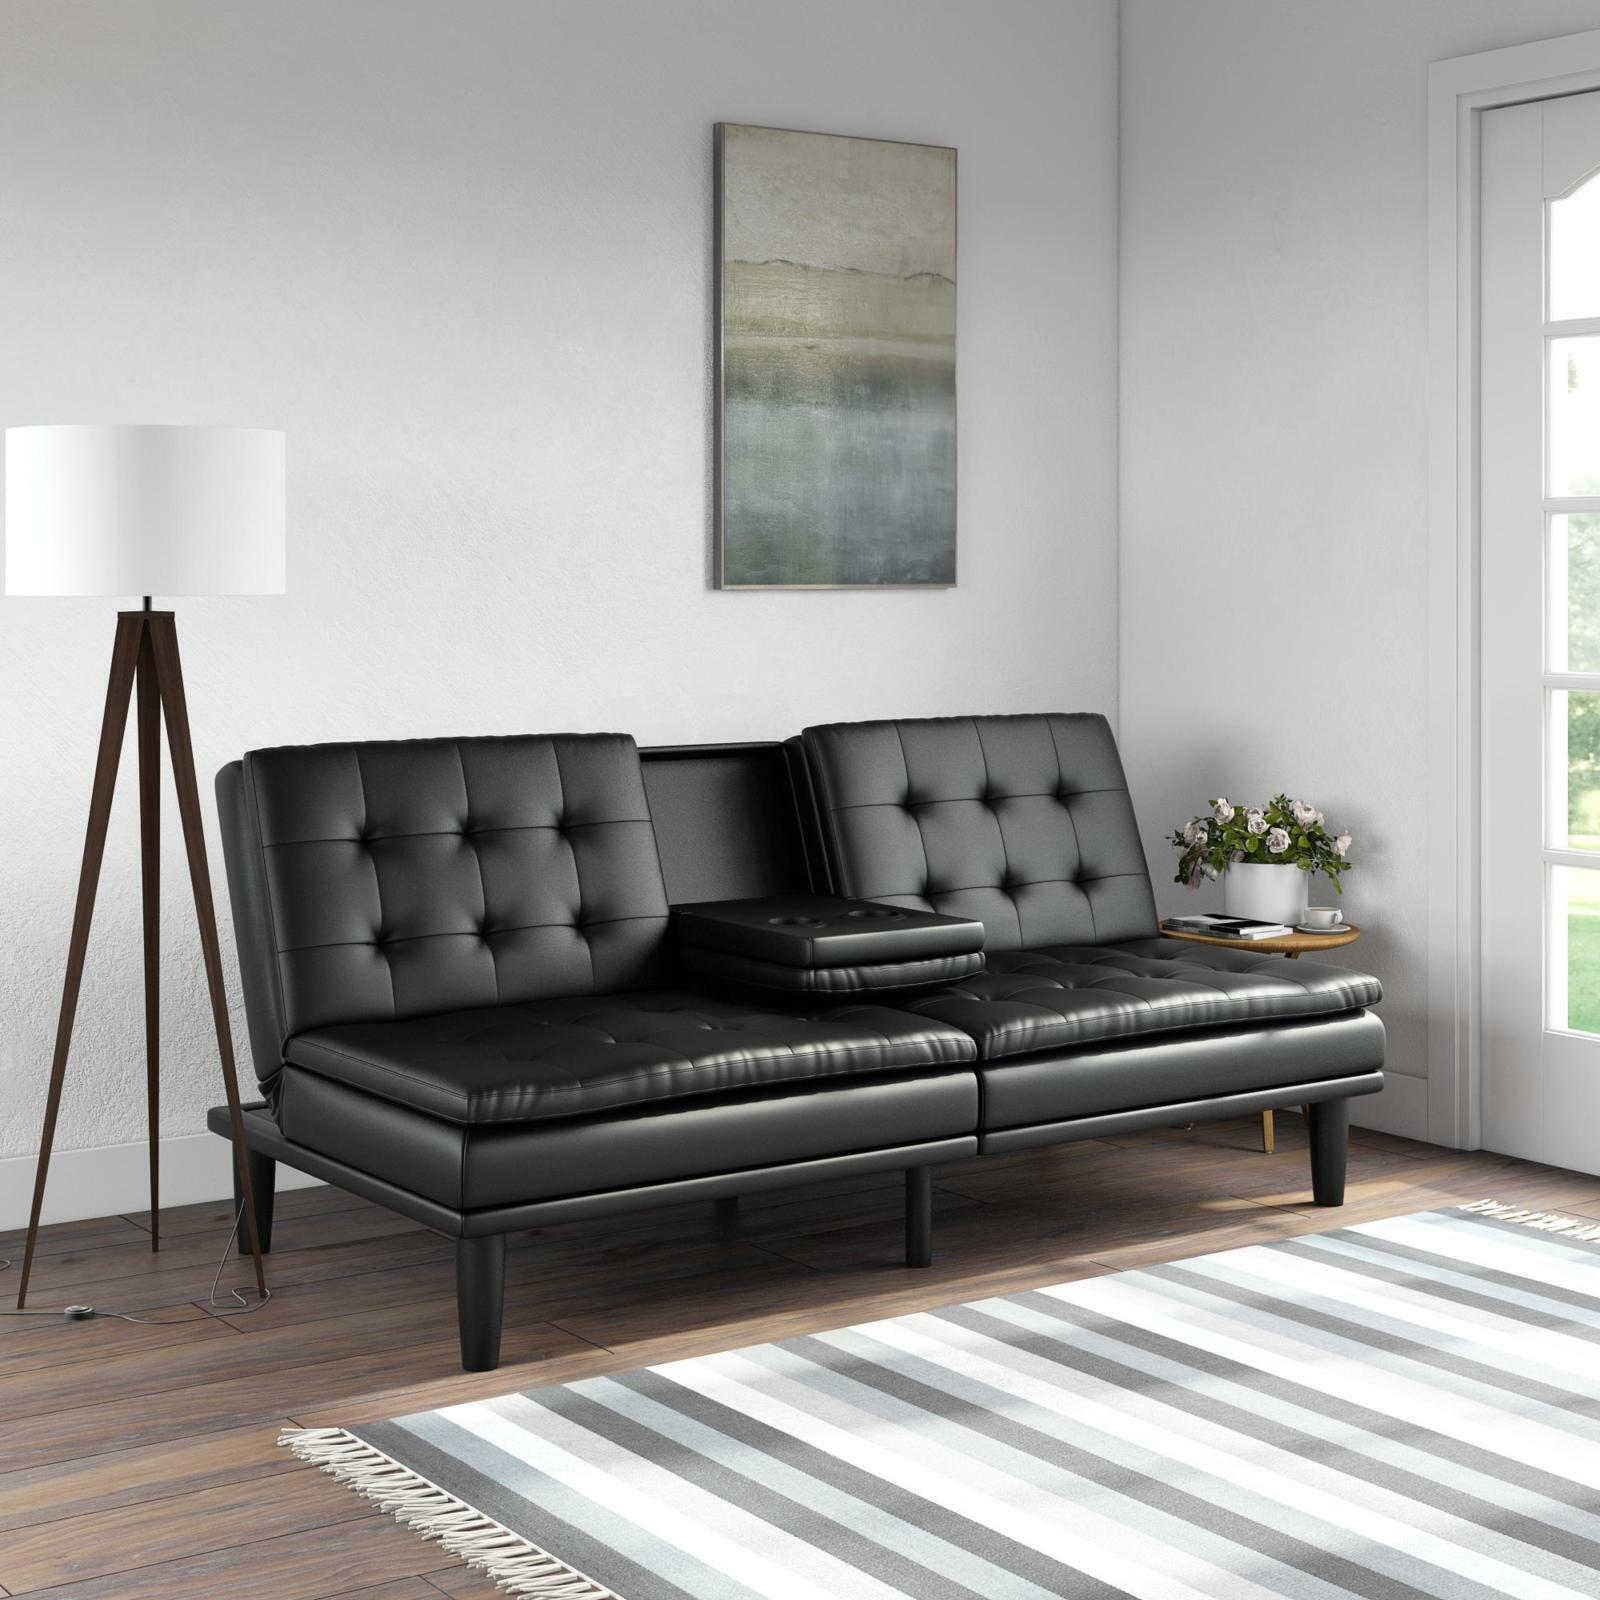 Details About Futon Sofa Bed Memory Foam Pillowtop W Cupholder Black Dark Brown Couch